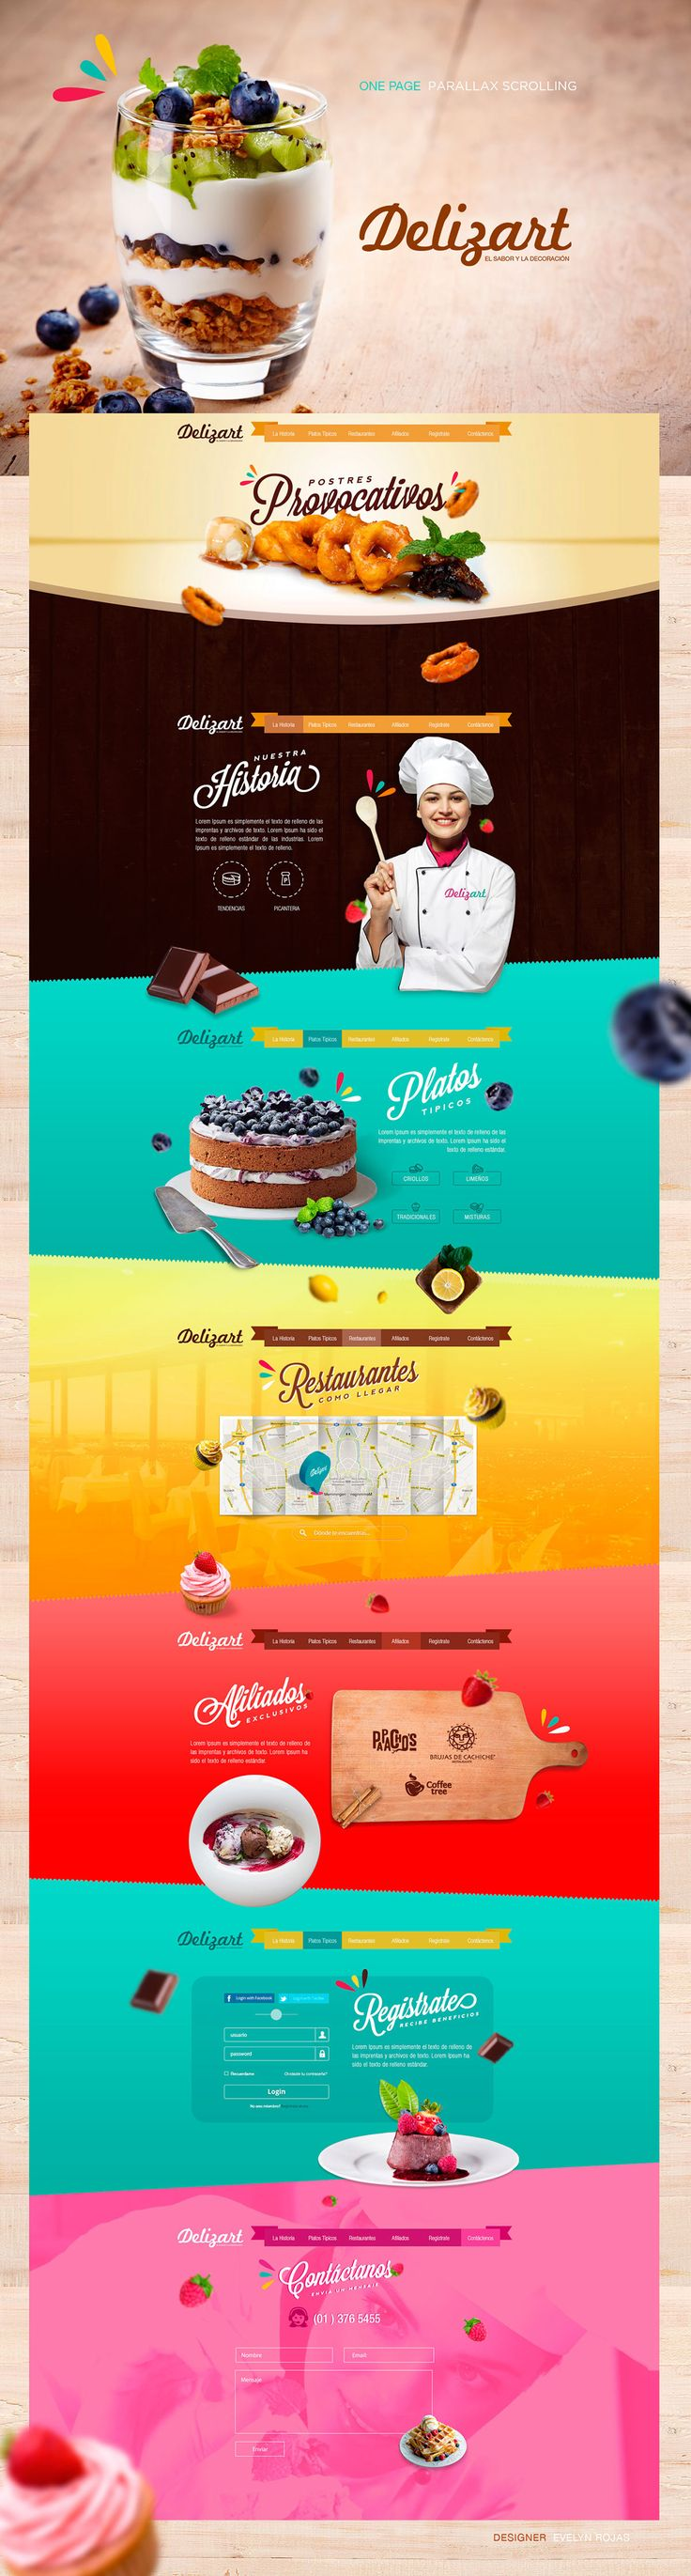 Parallax Web Design - Delizart on Behance